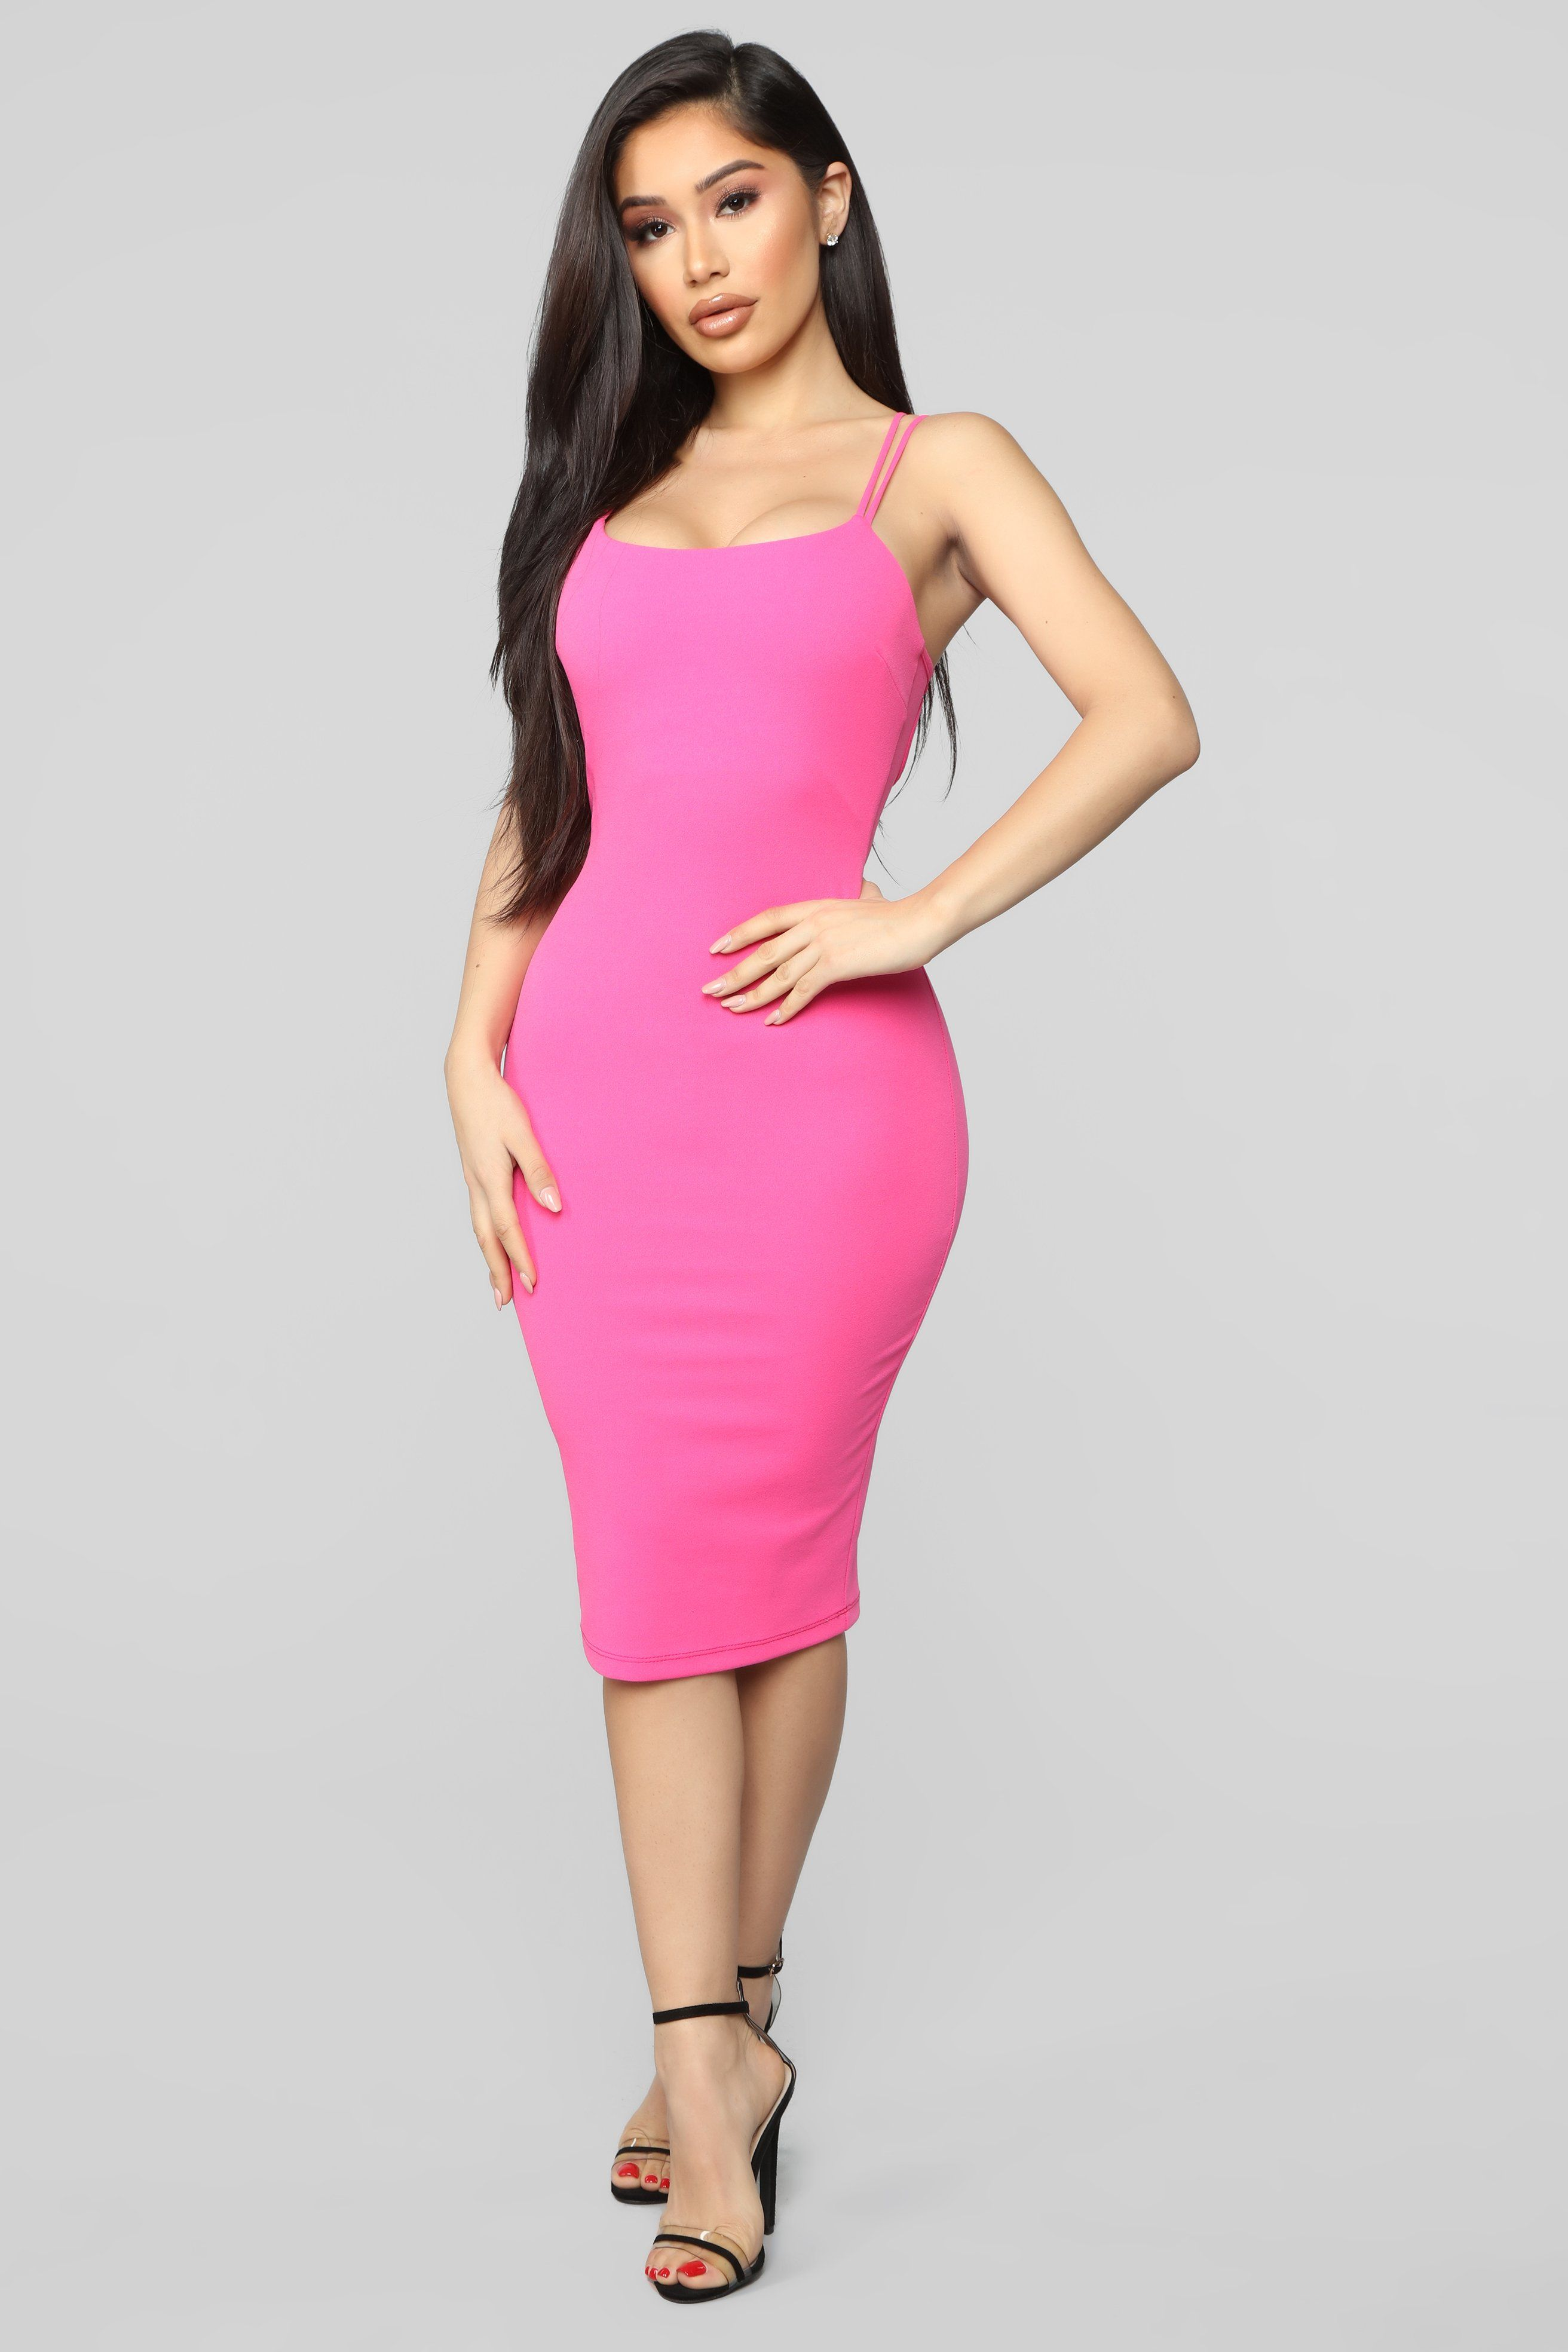 Never Texted Back Midi Dress Hot Pink Dresses, Pink